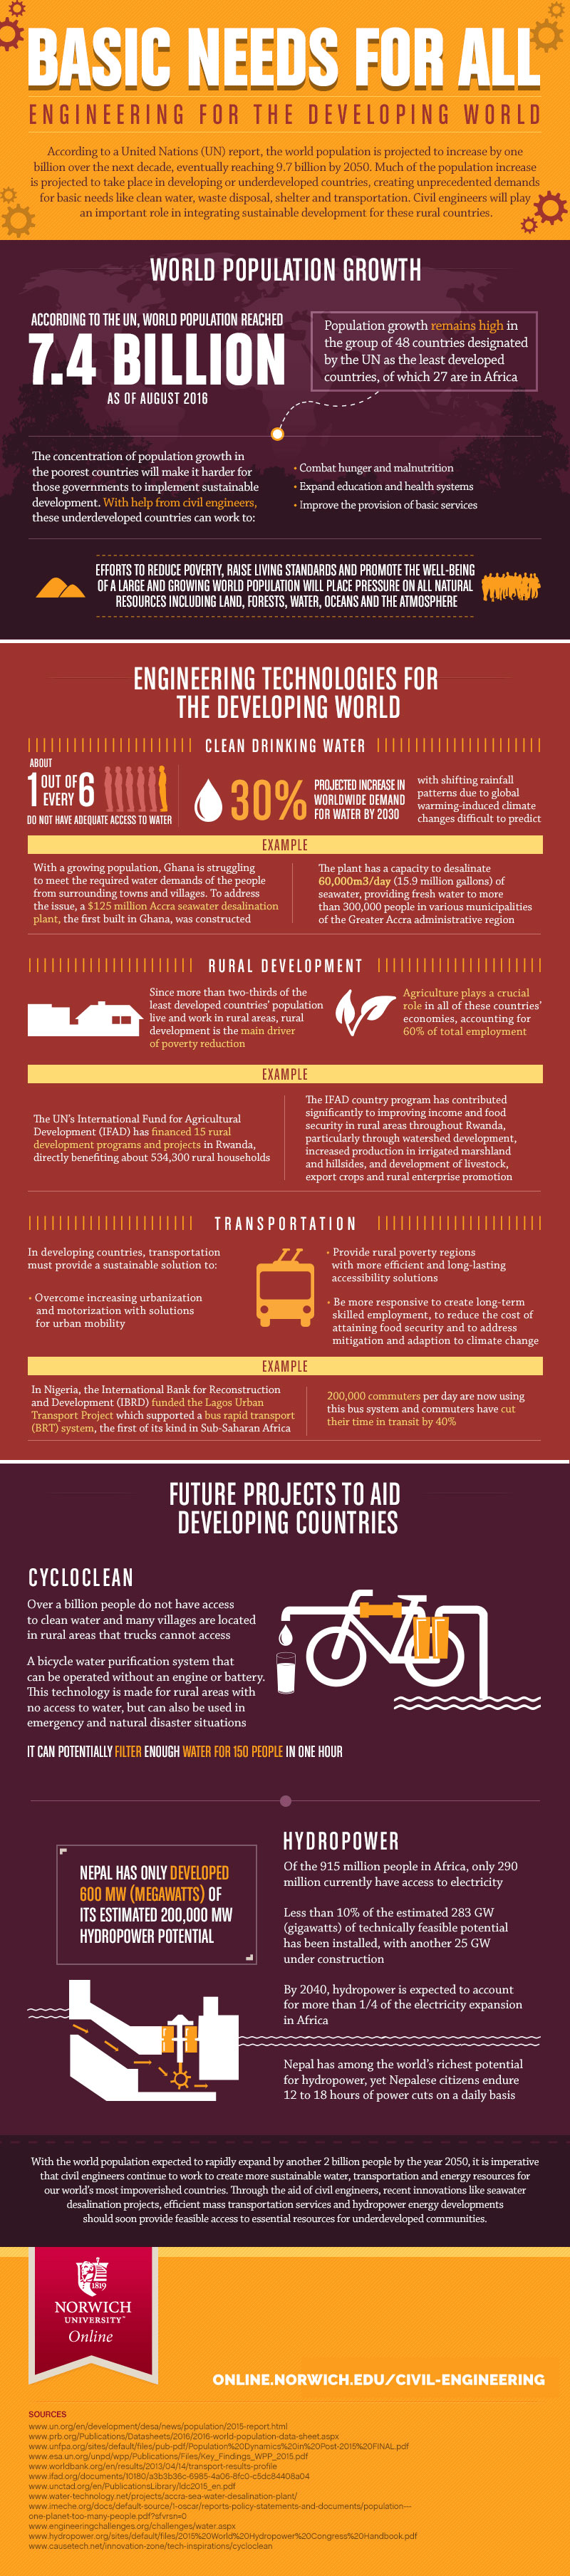 Basic Needs for All: Engineering for the Developing World #infographic